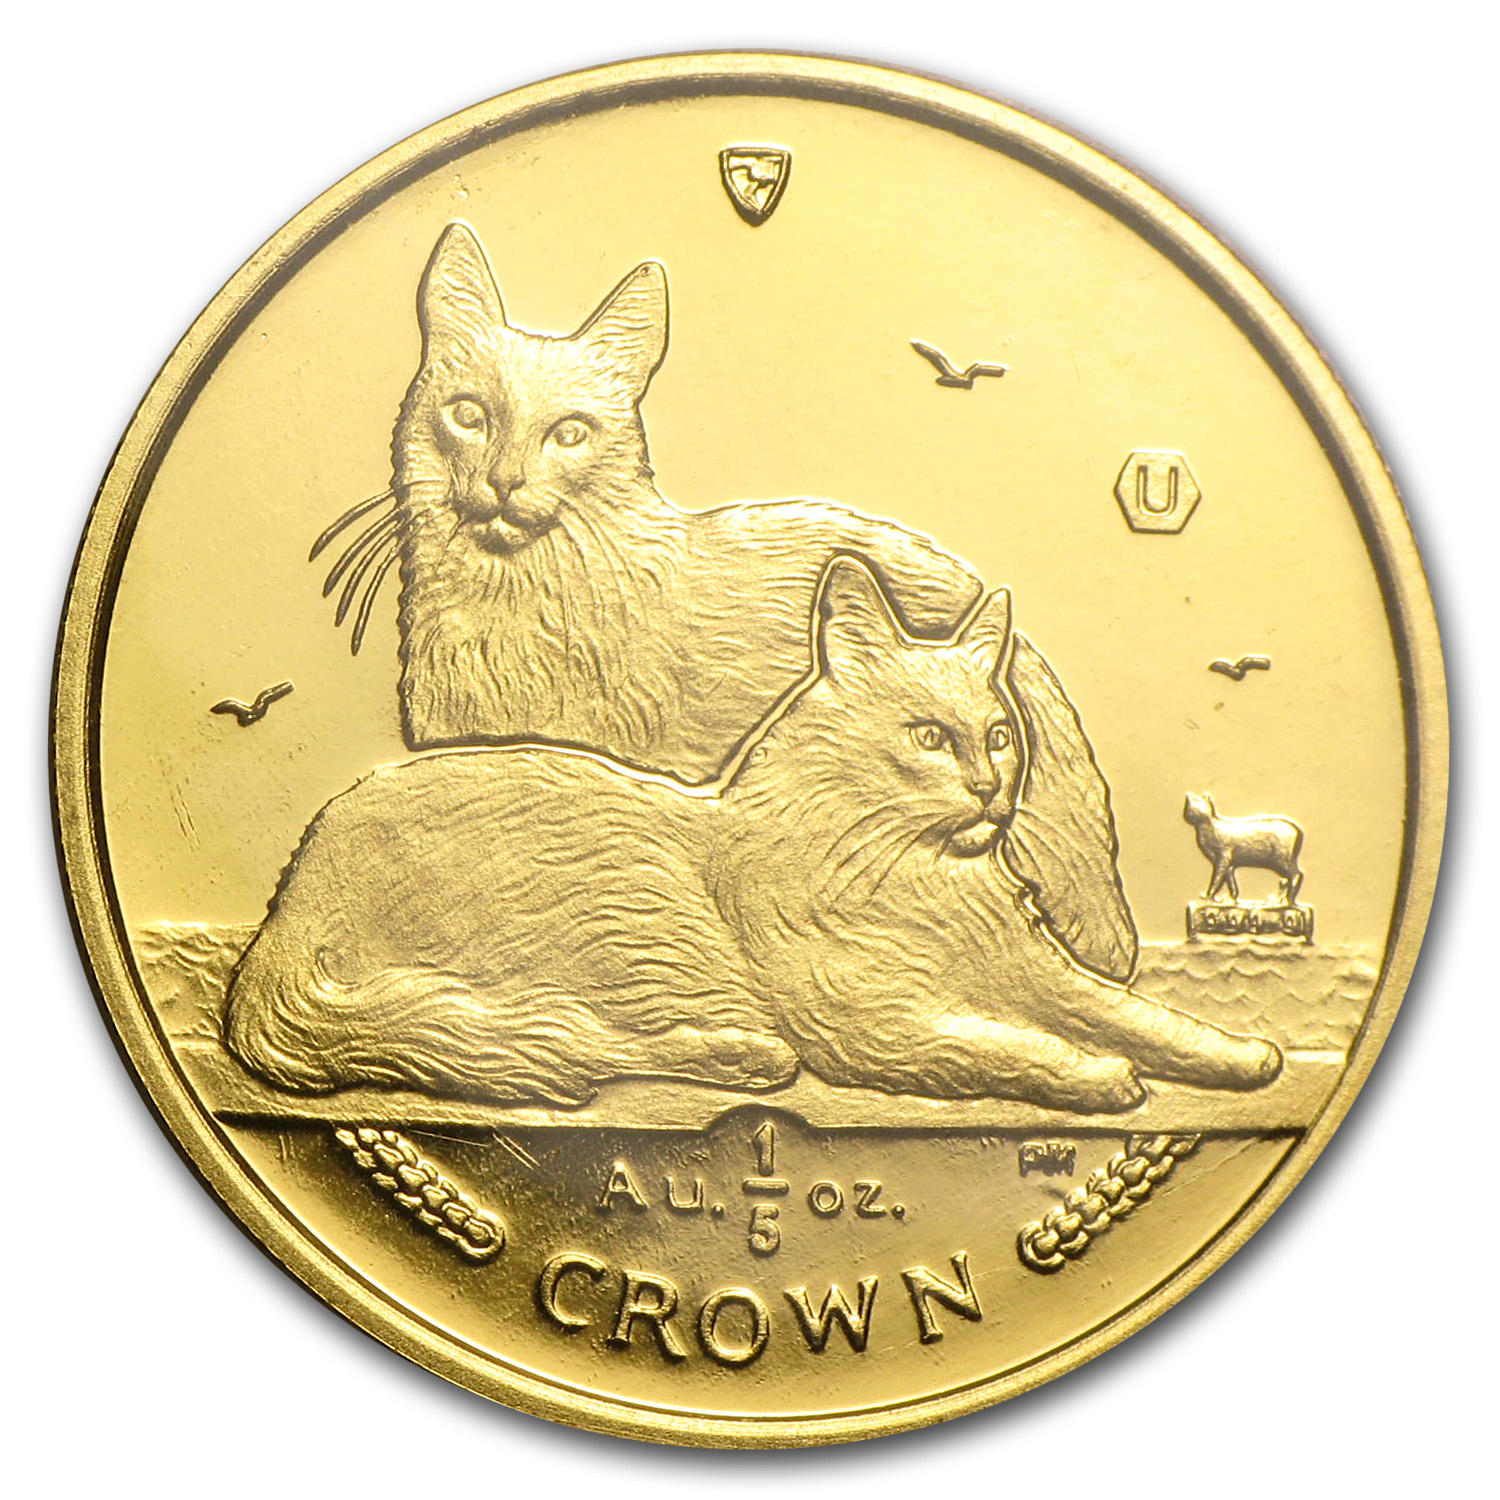 2011 Isle of Man 1/5 Crown Gold Angora Cats BU